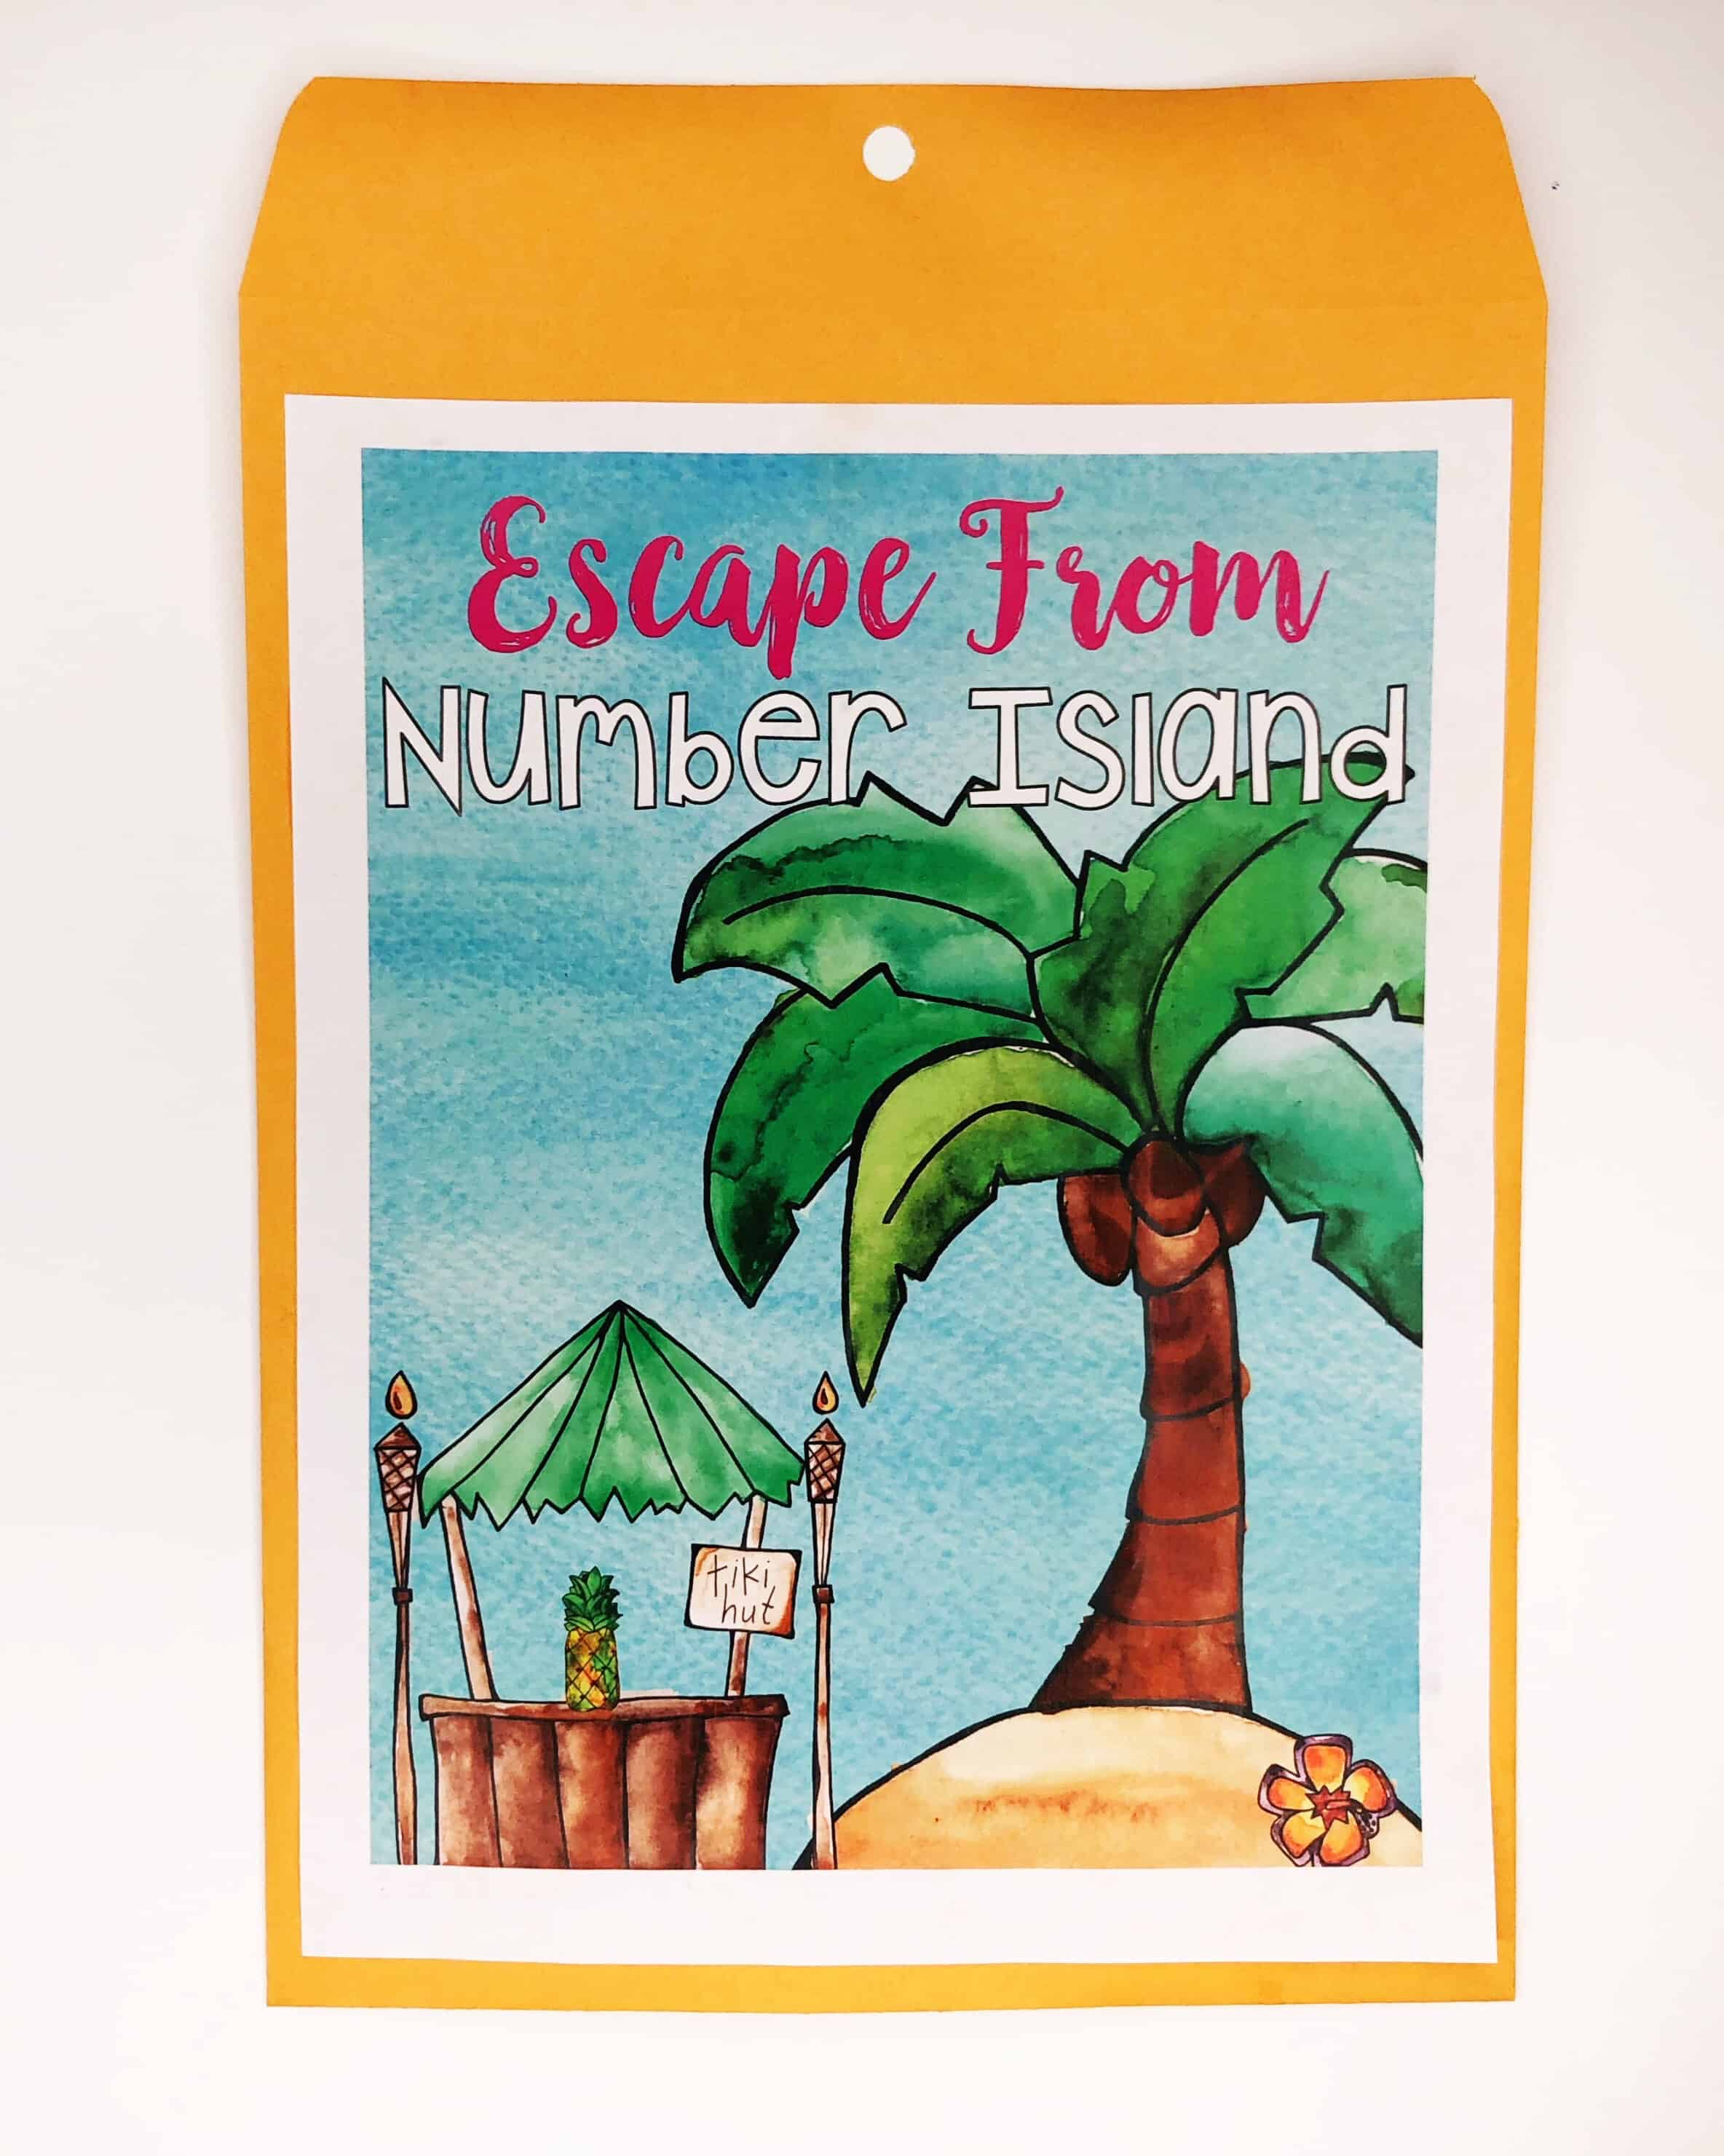 Escape classrooms envelope titled Escape From Number Island with palm tree and tiki hut illustration